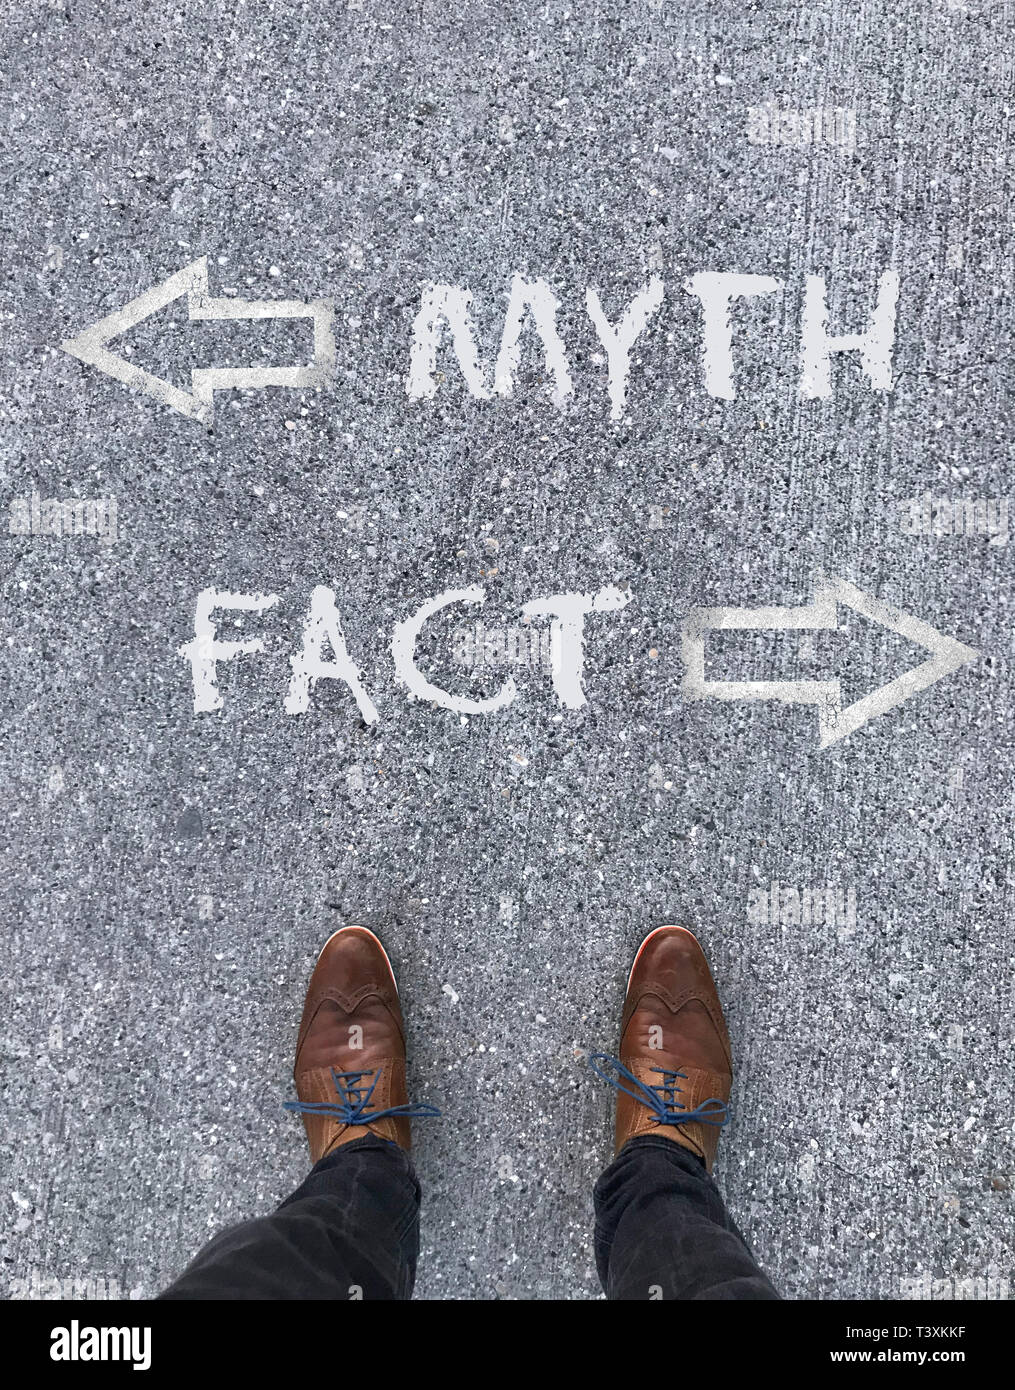 Man standing in front of two arrows and the words 'Myth' and 'Fact' - Stock Image